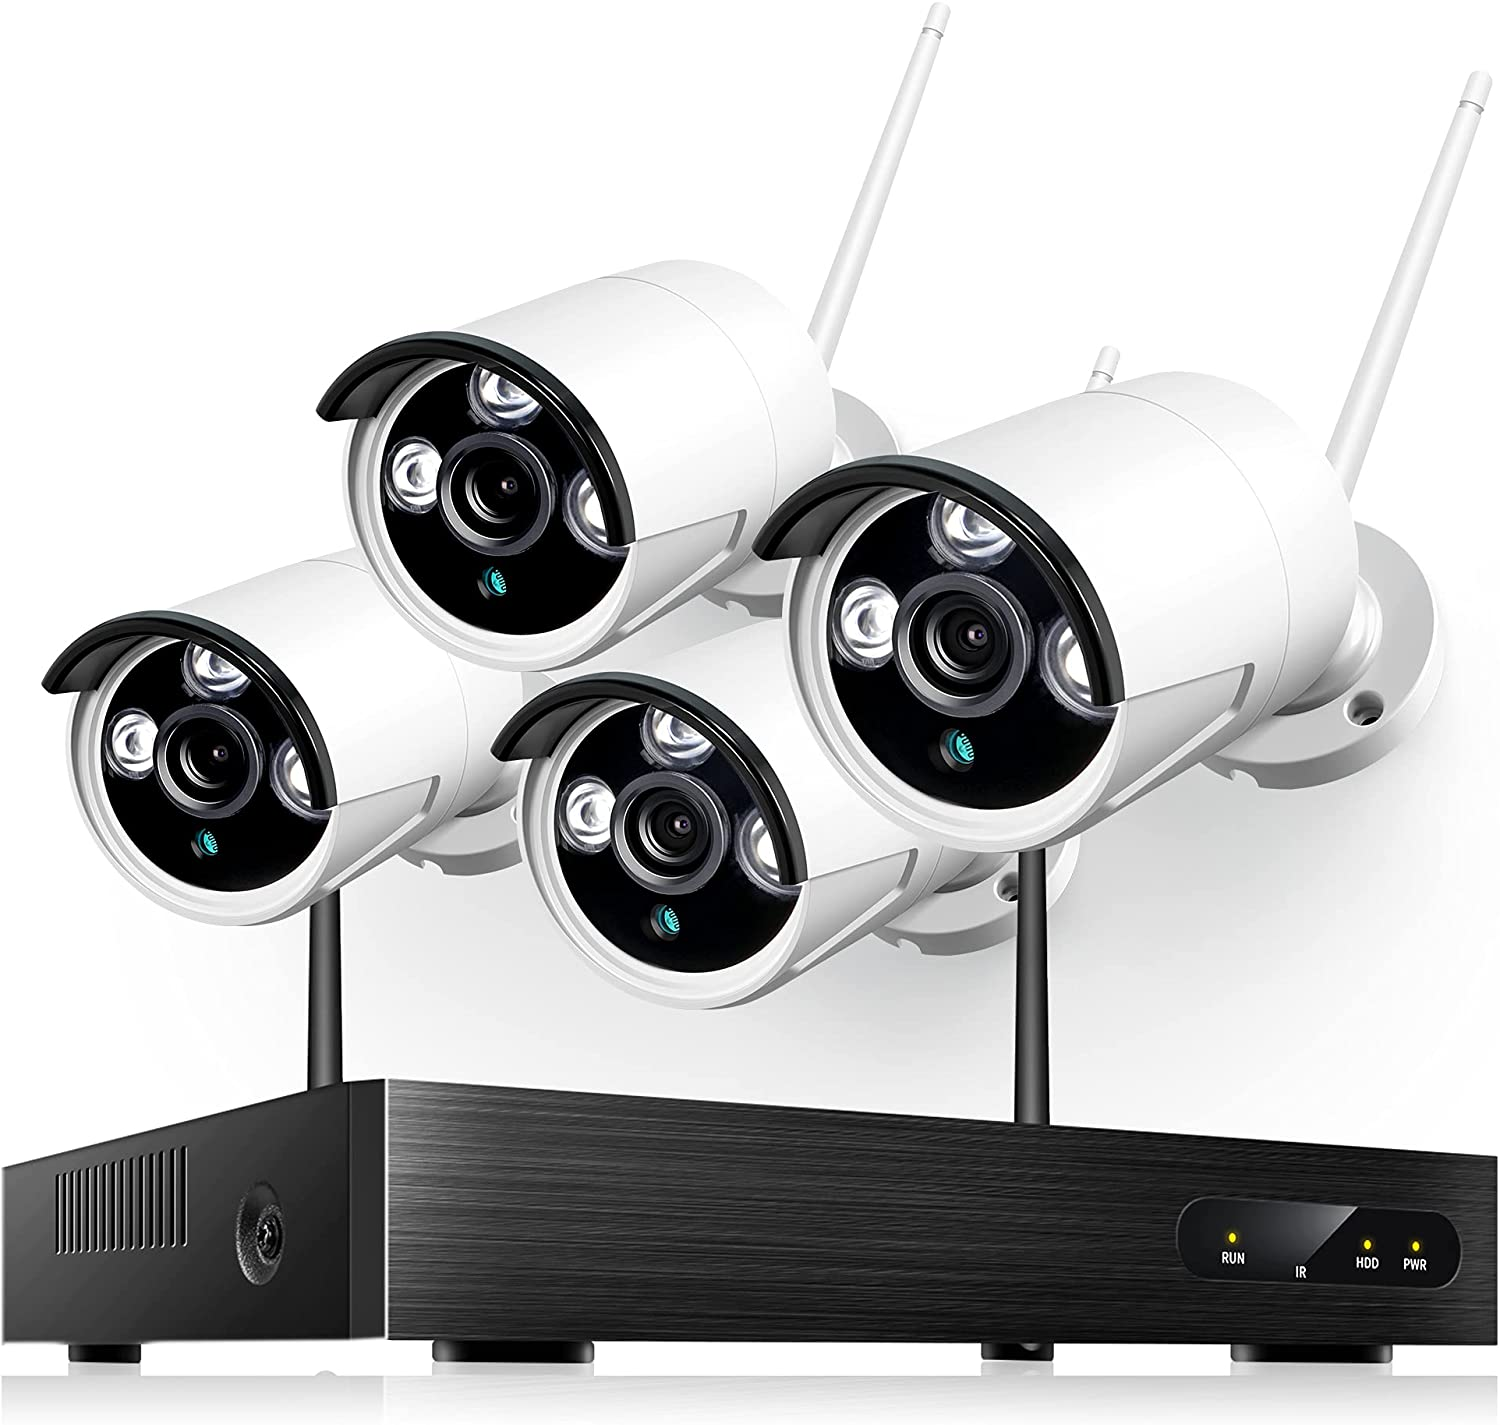 Heim Vision Wireless Security Camera 4Pcs 1080P Max 80% OFF low-pricing 8CH Outdoor NVR